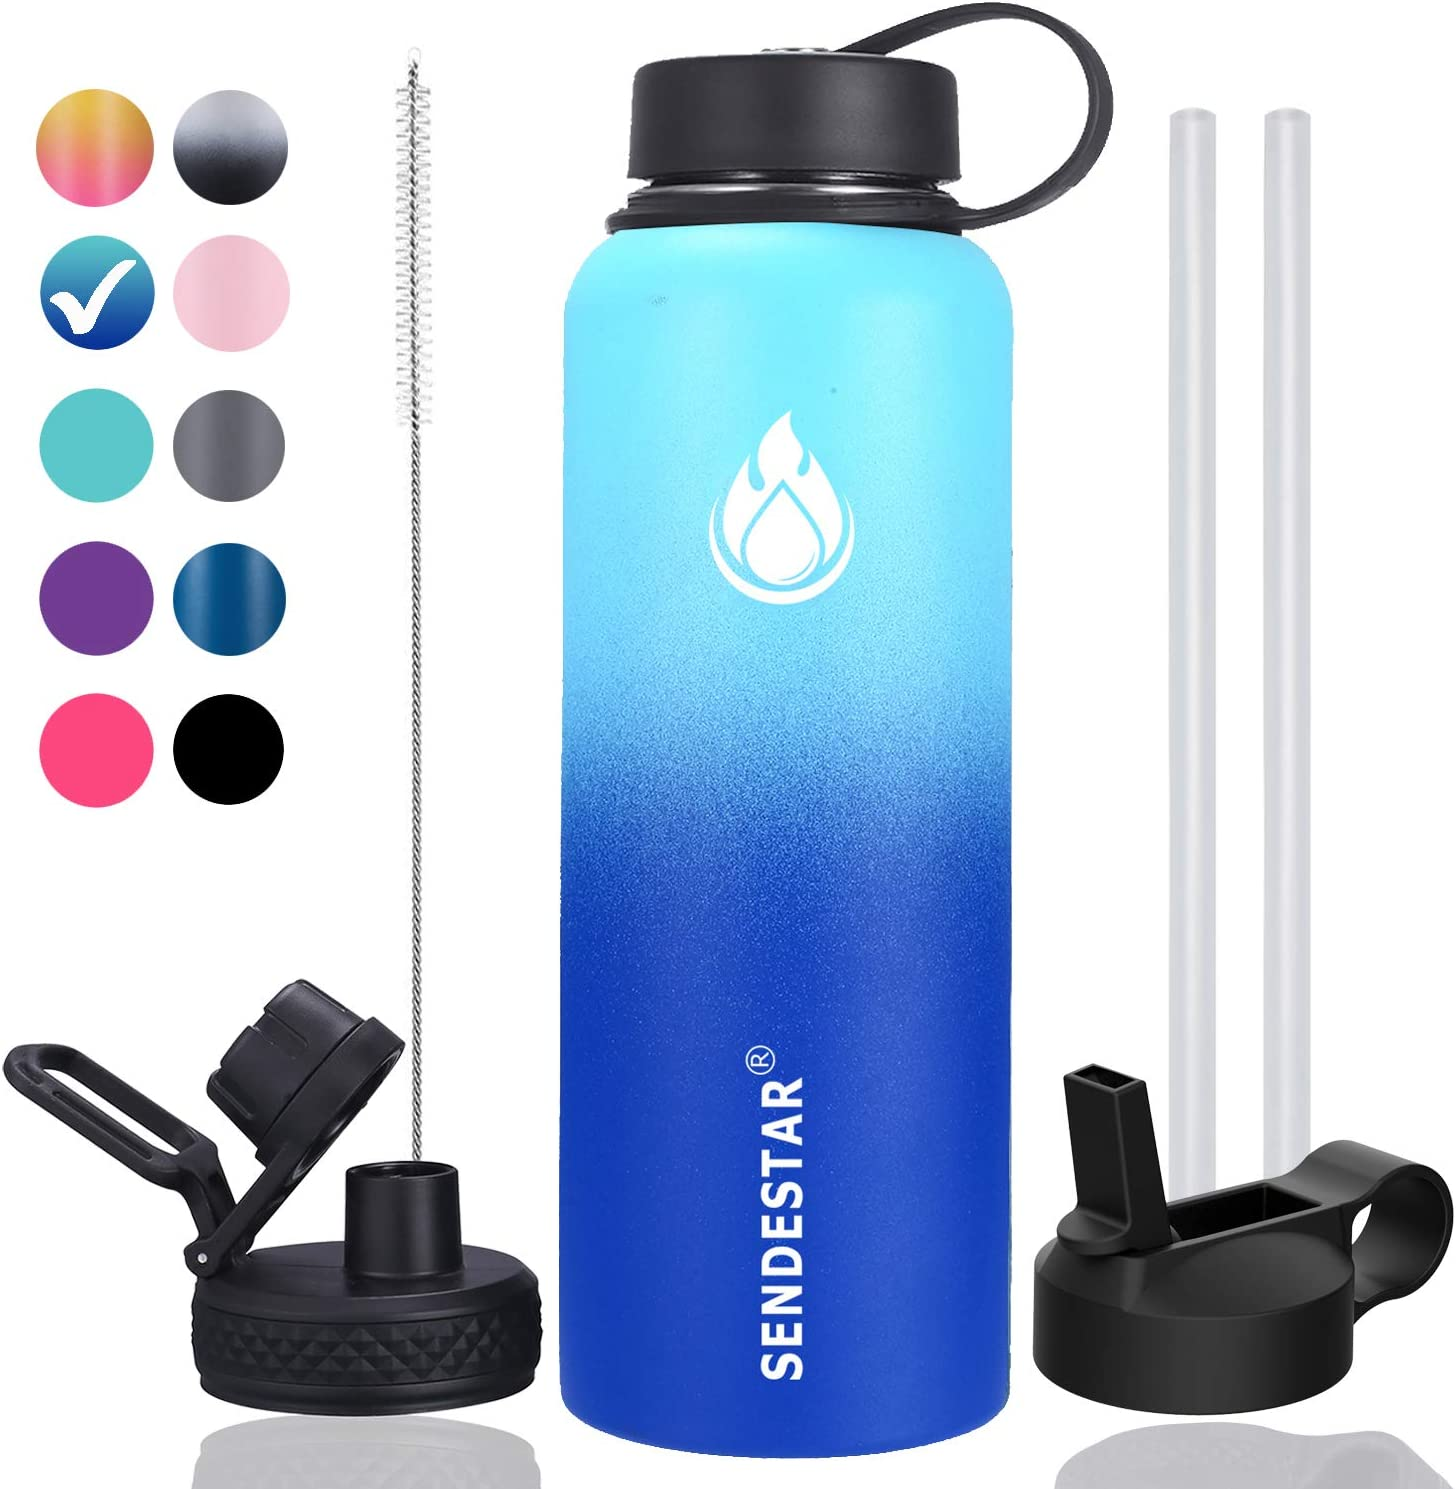 SENDESTAR 32 oz or 40 oz Double Wall Vacuum Insulated Leak Proof Stainless Steel Sports Water Bottle —Wide Mouth with Straw Lid & Flex Cap & Spout Lid (40 oz, Ocean)